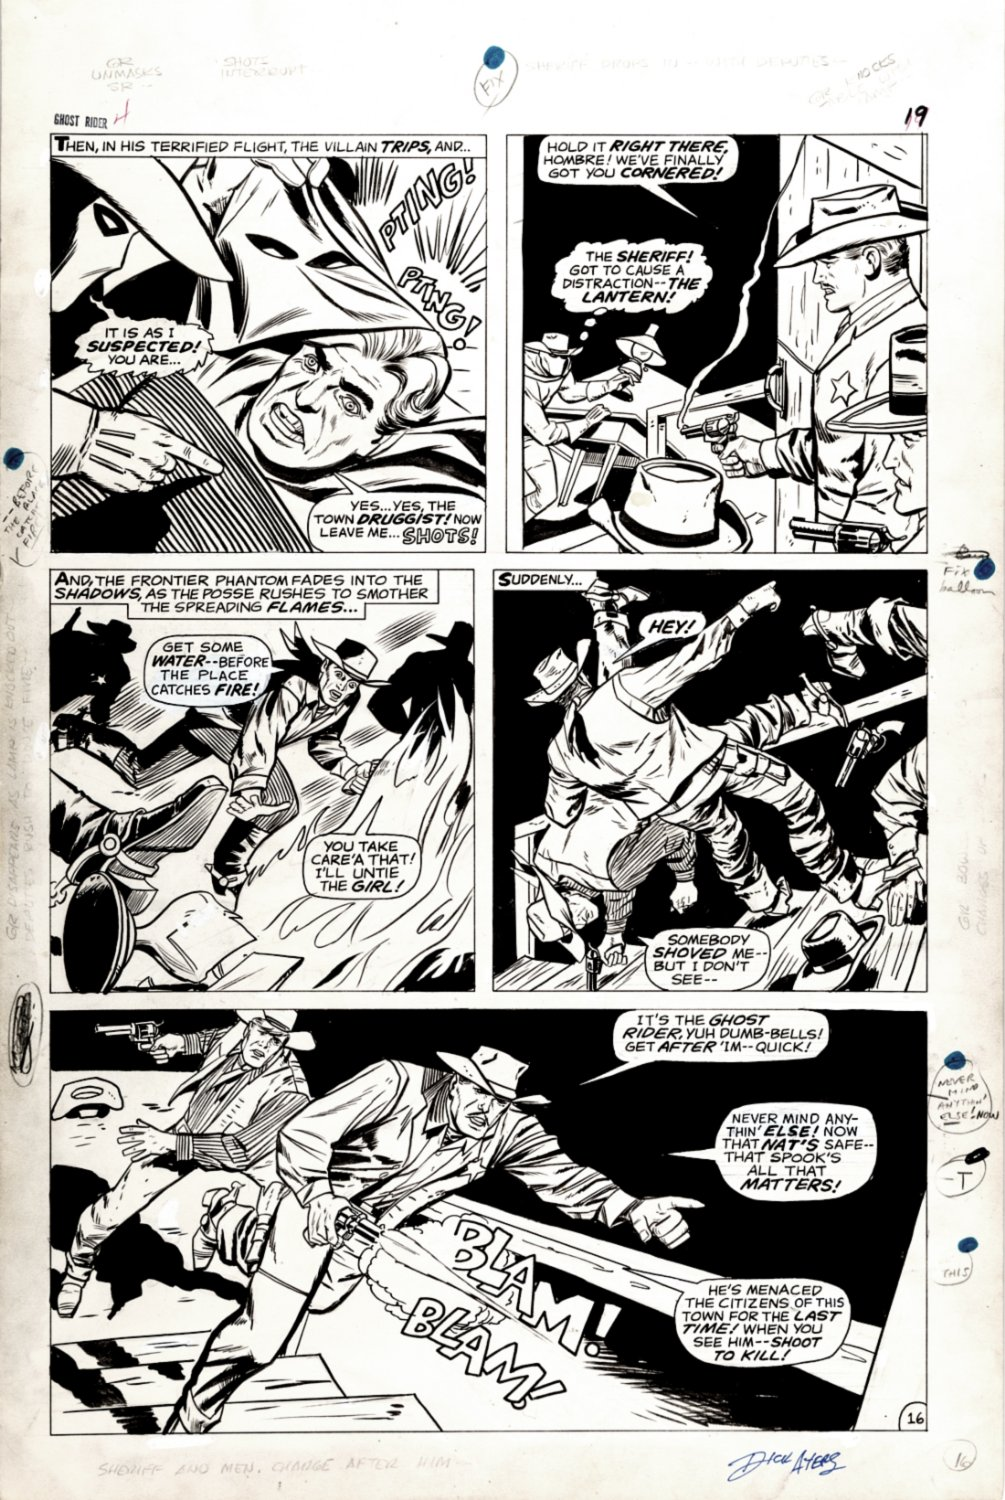 Ghost Rider #4 p 16 (SOLD LIVE ON THE ROMITAMAN ART DROP PODCAST: 8-28-2021 (RE-WATCH THIS ART SELLING SHOW HERE)